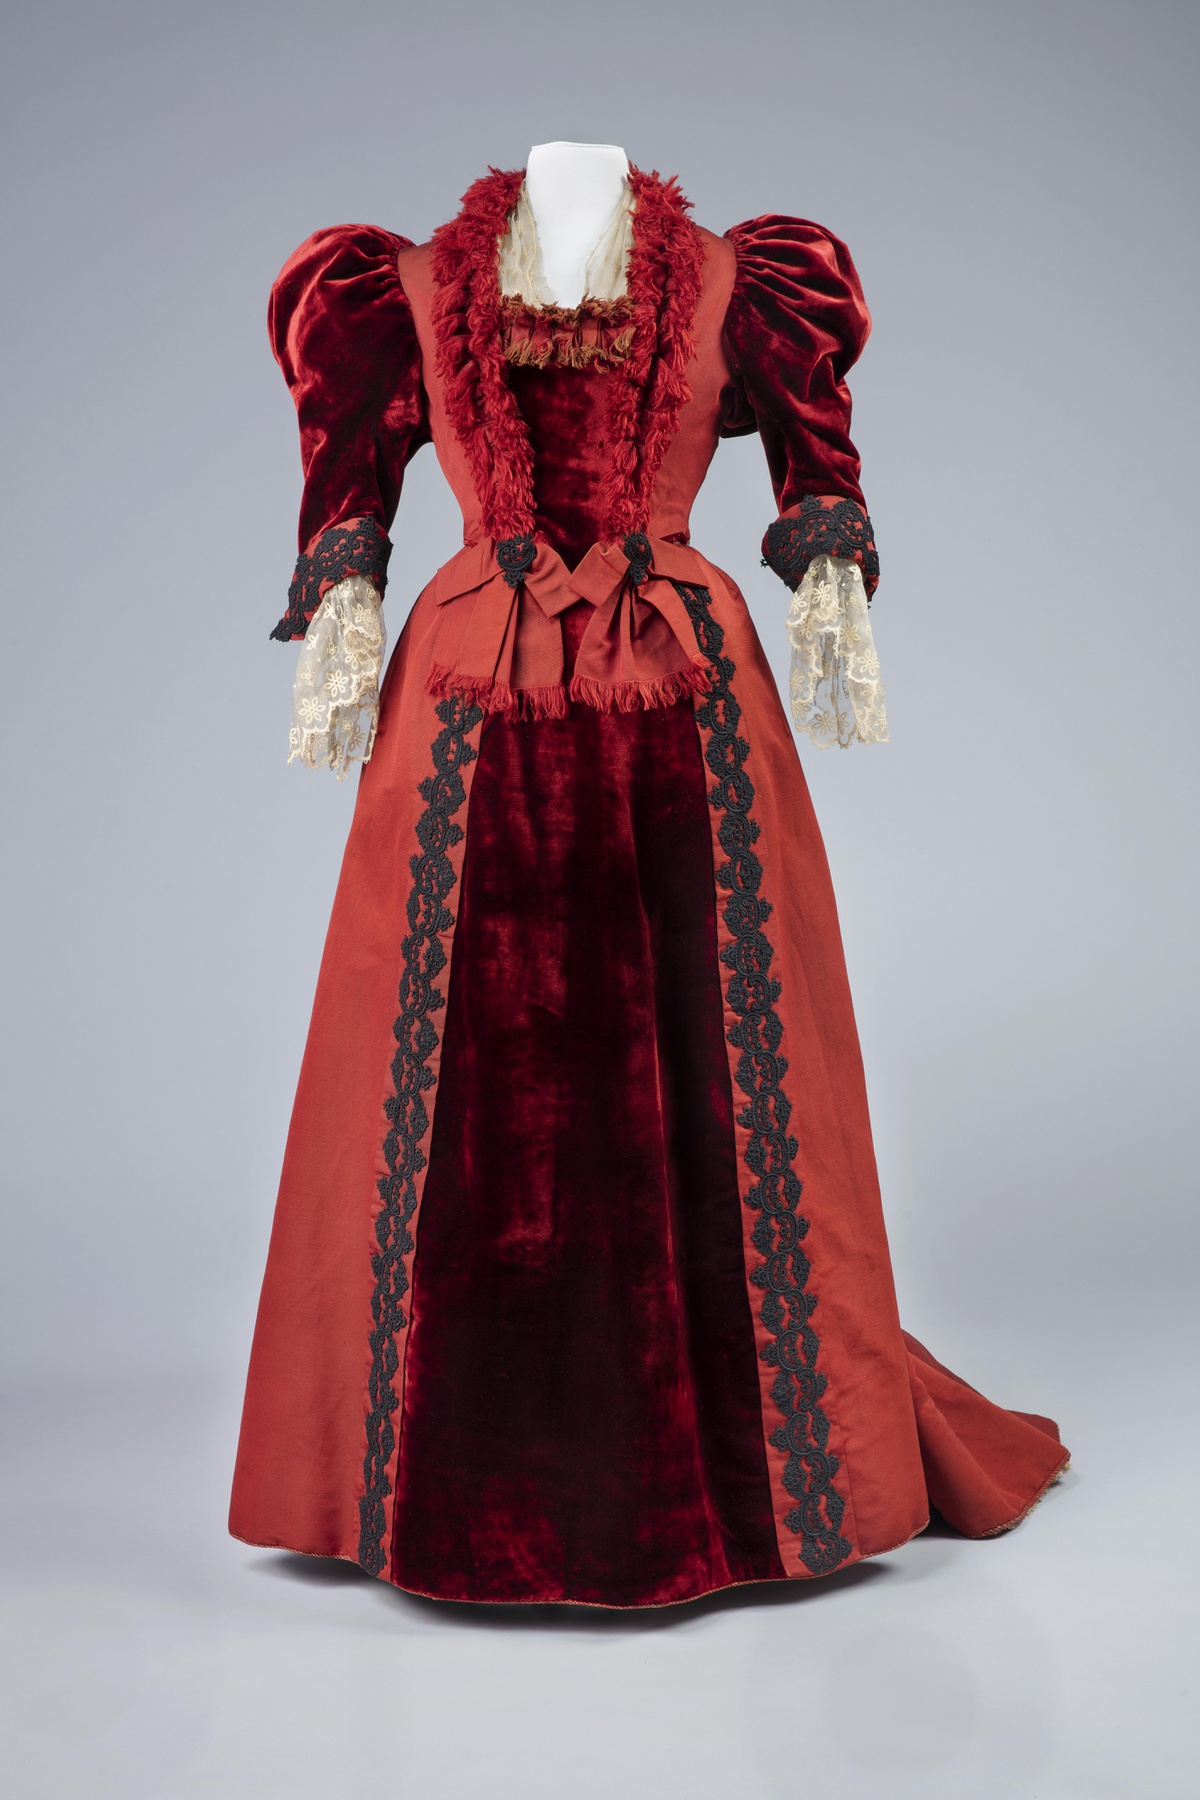 A mid 1890s dress in red silk and red silk velvet, with puffed sleeves, Dress in two parts, 1896, silk, lace and passementerie, 10592:001-002 Centraal Museum Utrecht